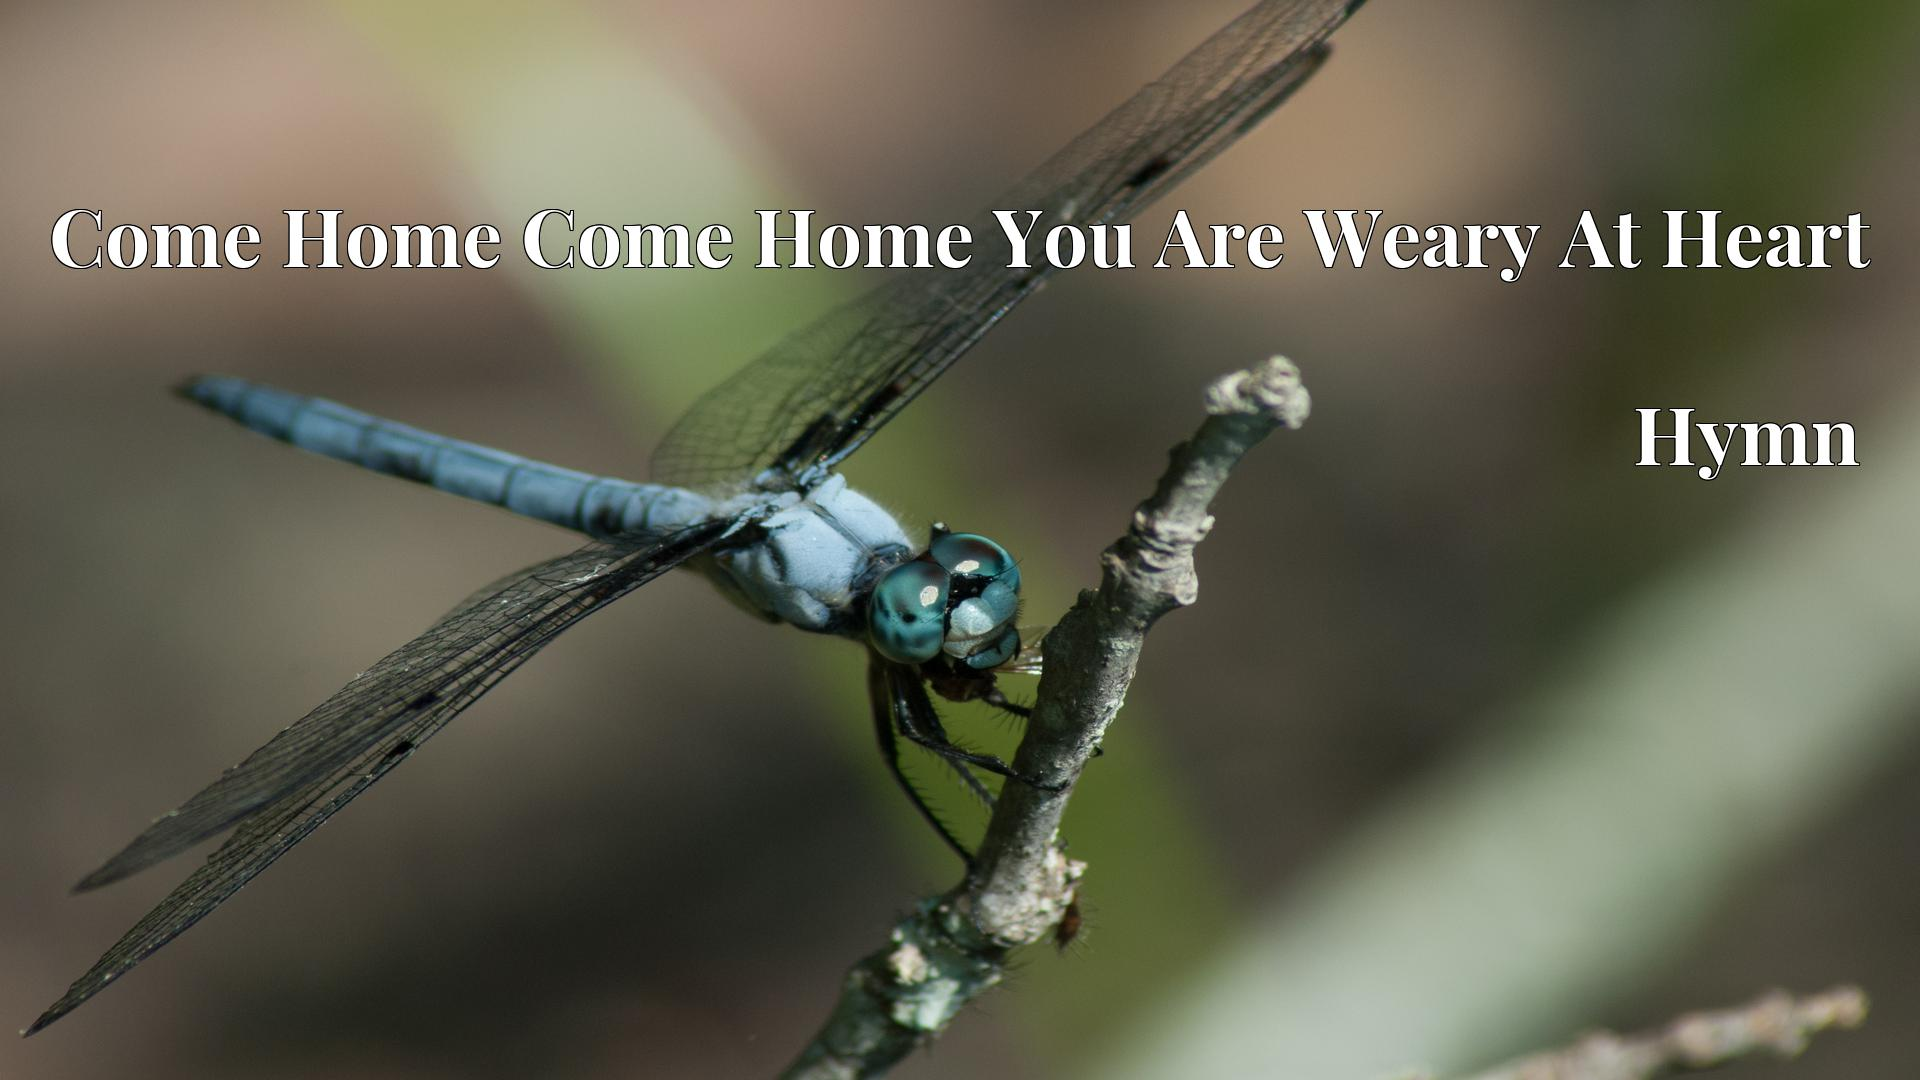 Come Home Come Home You Are Weary At Heart - Hymn